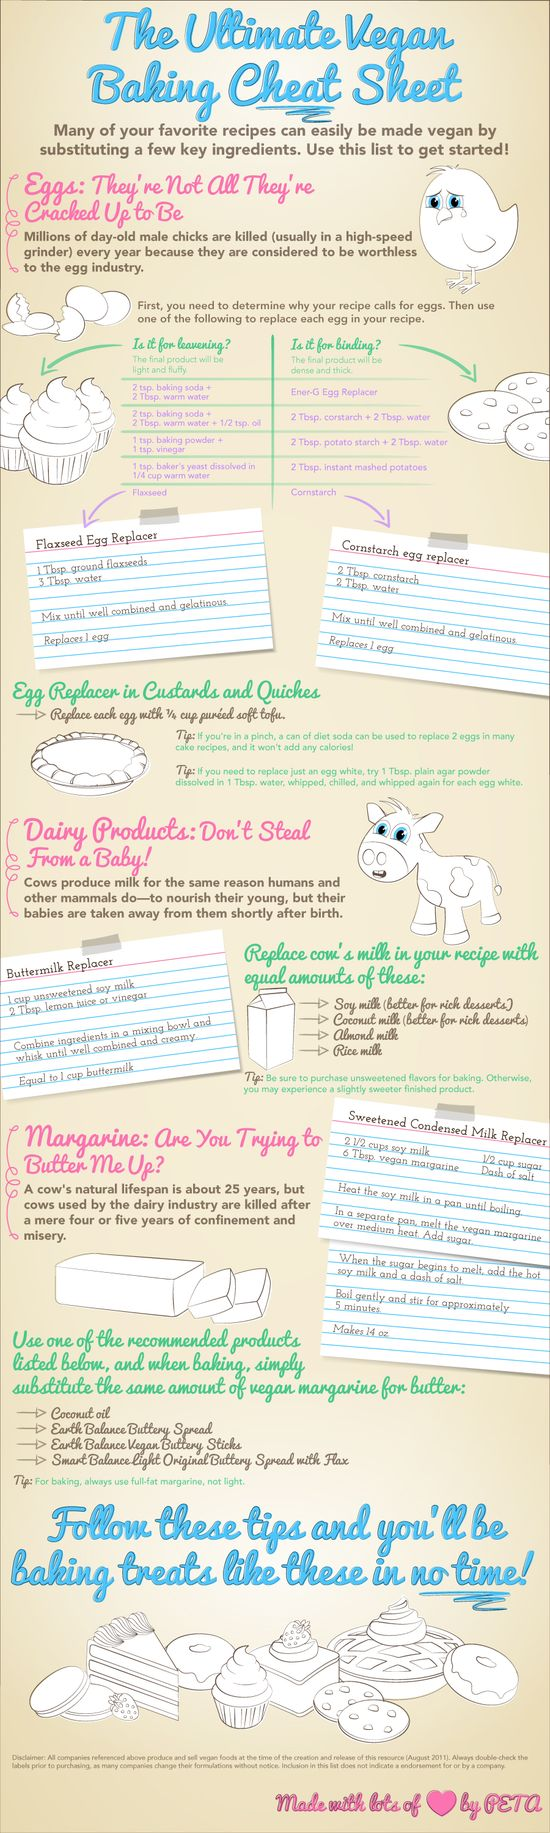 Baking should be a joyful experience for everyone involved. Spare the lives of countless animals by choosing to make your favorite recipes vegan. Save a copy of PETA's Ultimate Vegan Baking Cheat Sheet and begin baking with compassion! #baking #vegan #bake #cooking #food #veganism #govegan #vegetarian #animalfriendly #animalfree #compassion #kitchentips #cheatsheet #infographic #facts